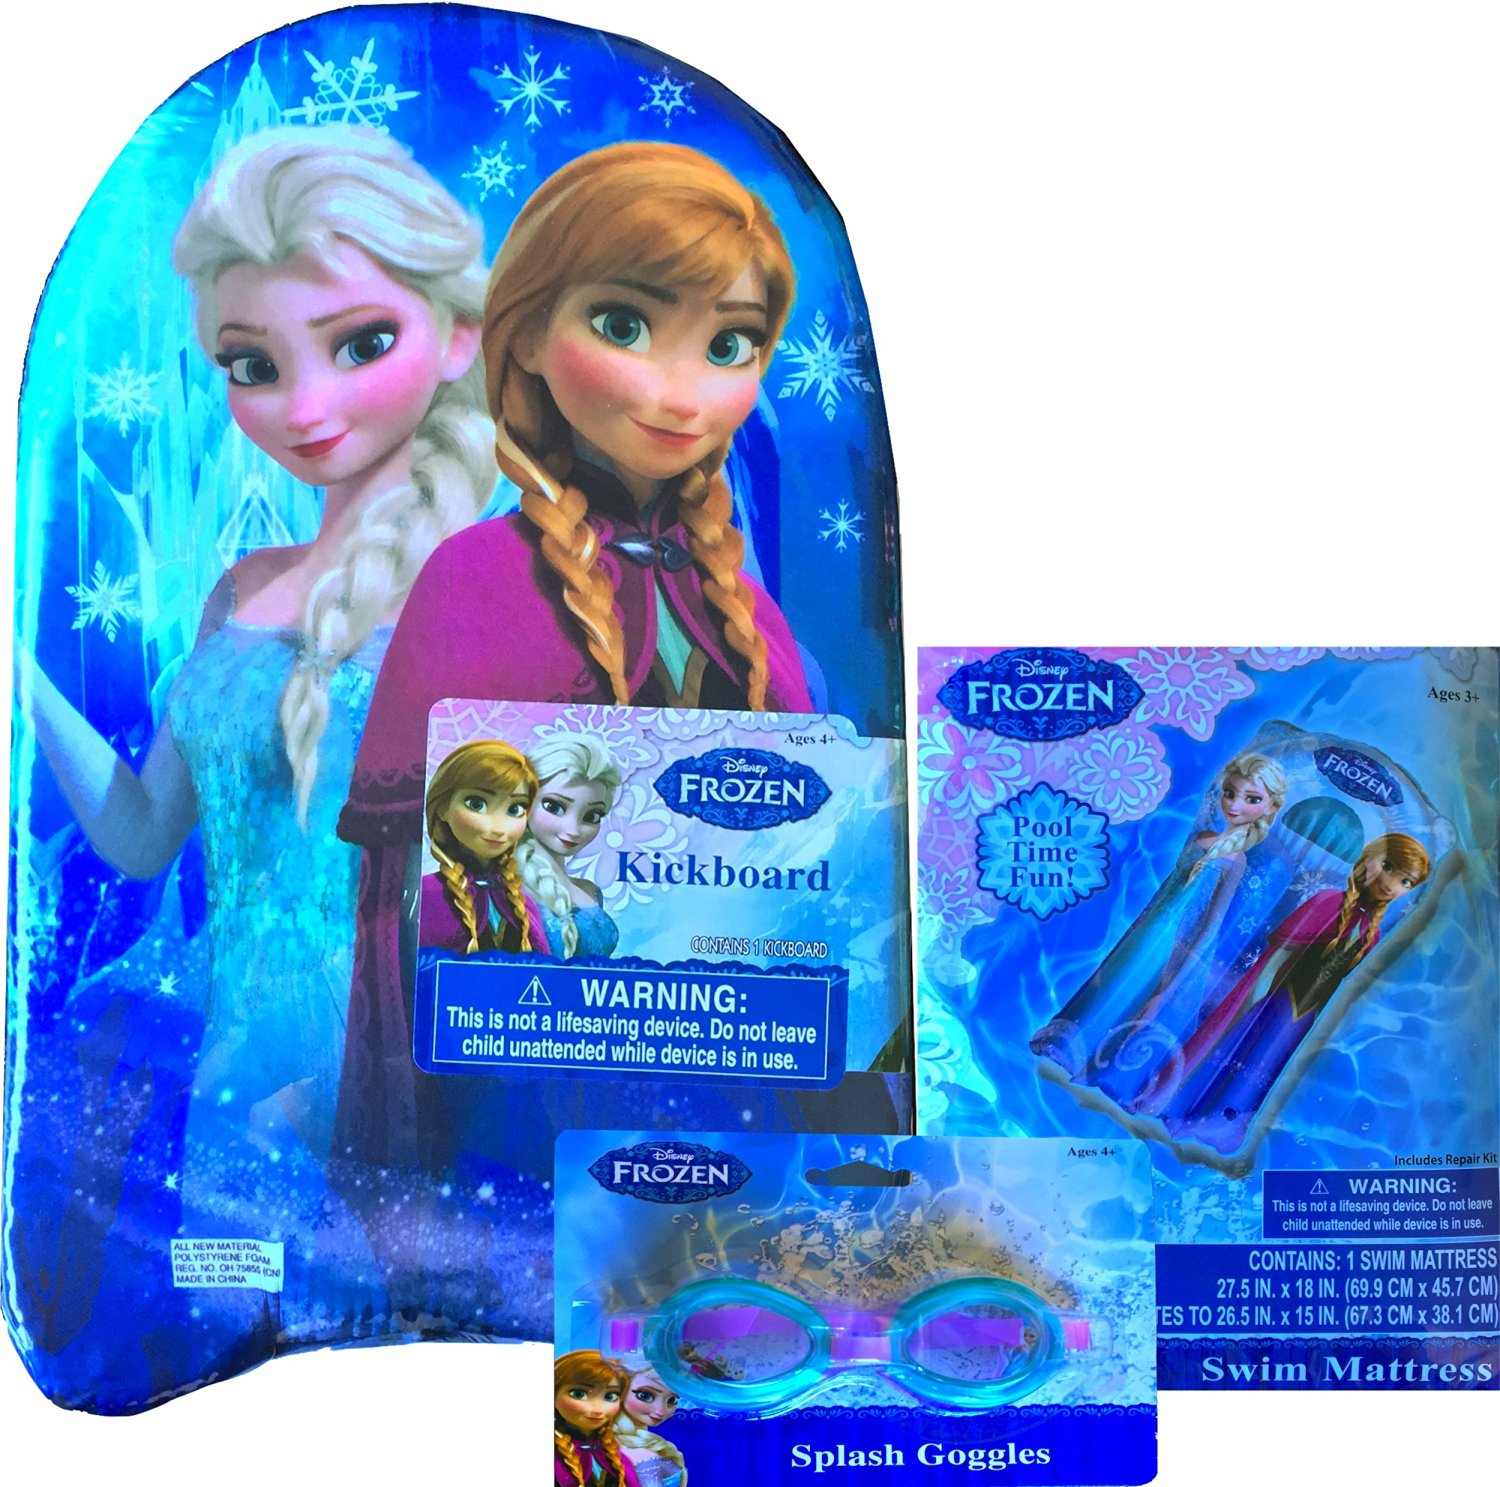 Disney Frozen Beach Gift Set Includes Disney Frozen Kick-board Polystyrene Foam ,Disney Frozen Splash Goggles , Disney Frozen Swim Mattress